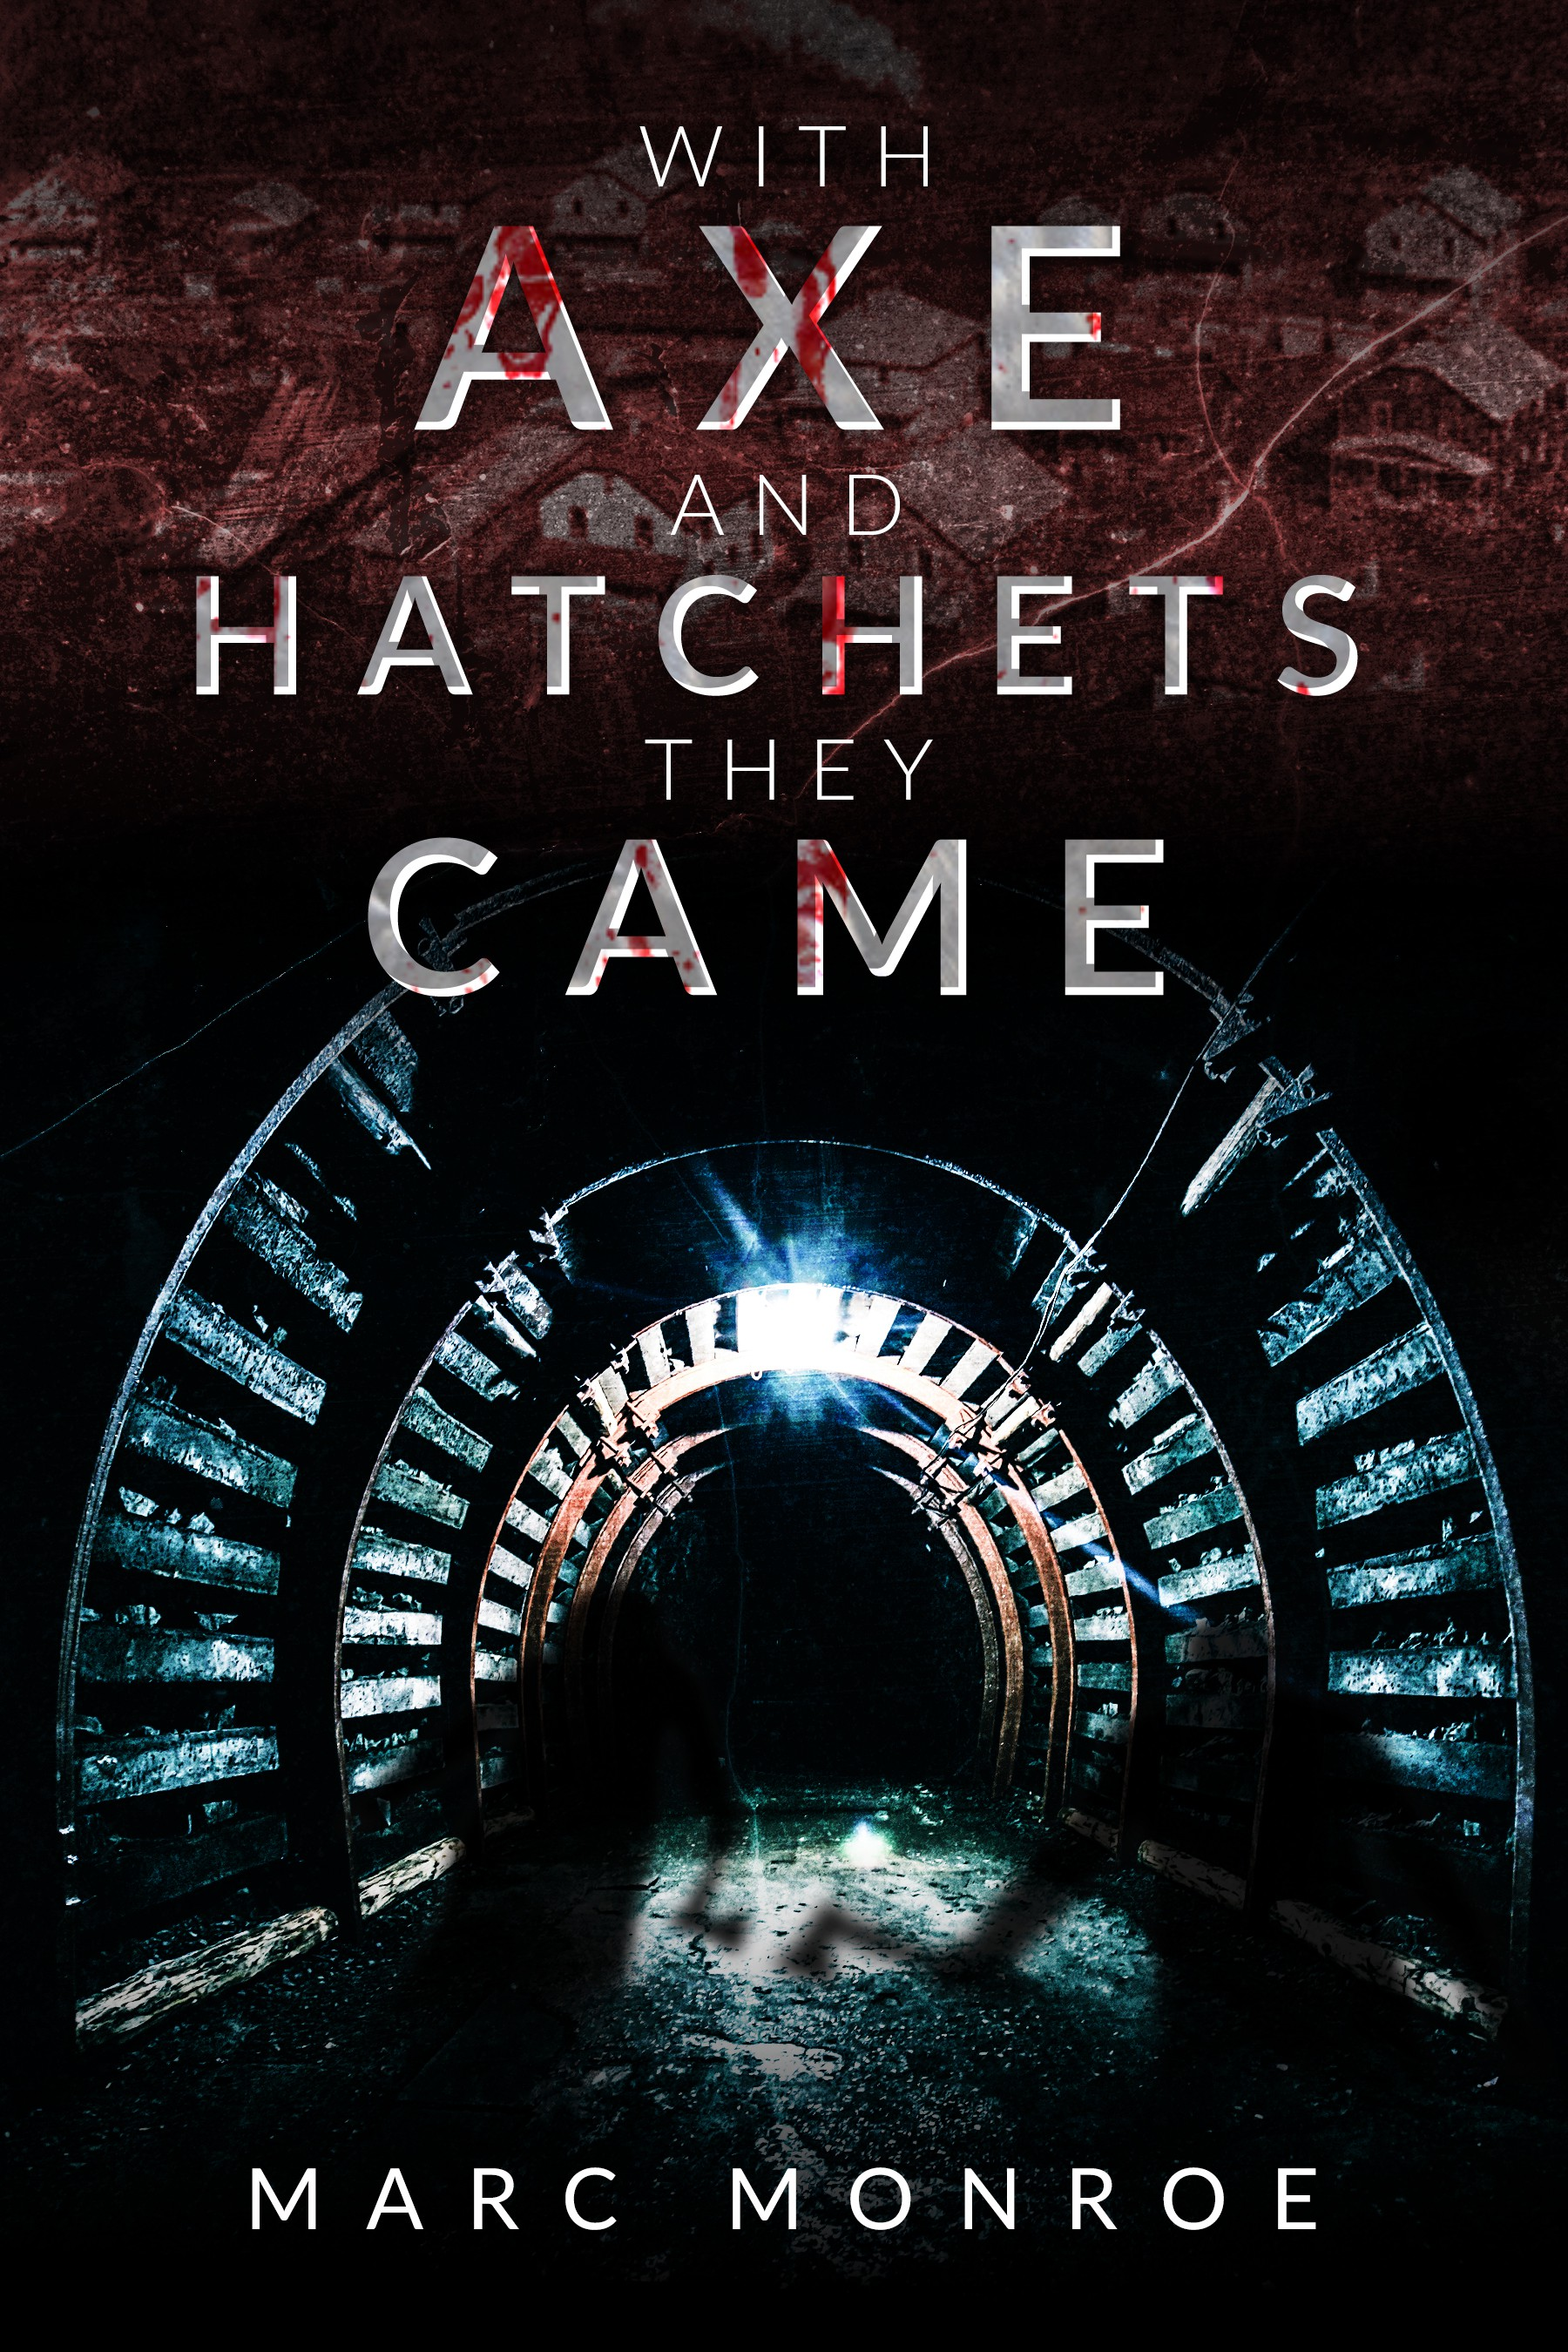 With Axe and Hatchets They Came by Marc Monroe